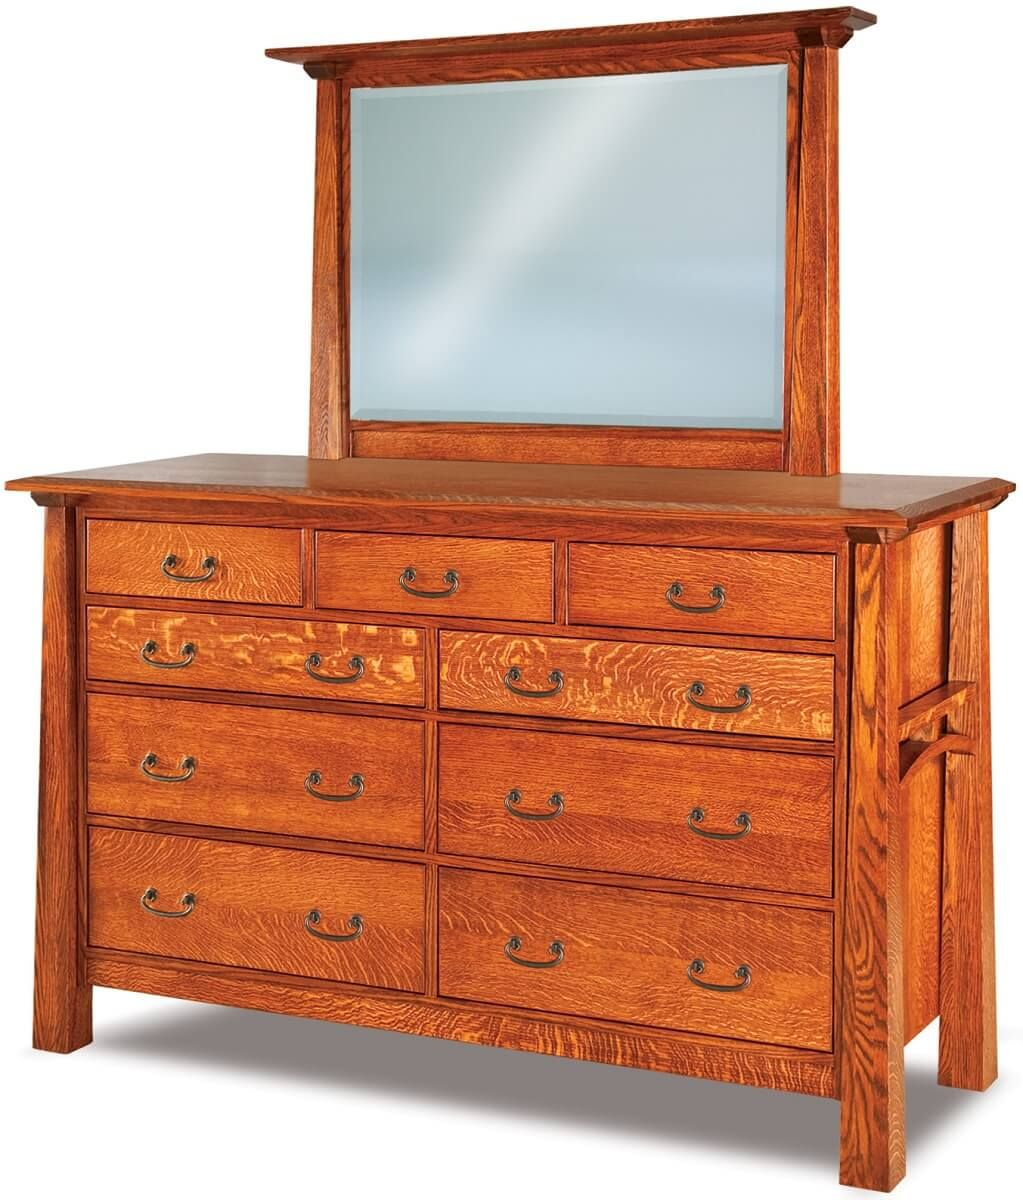 Bellevue Tall Dresser with Mirror